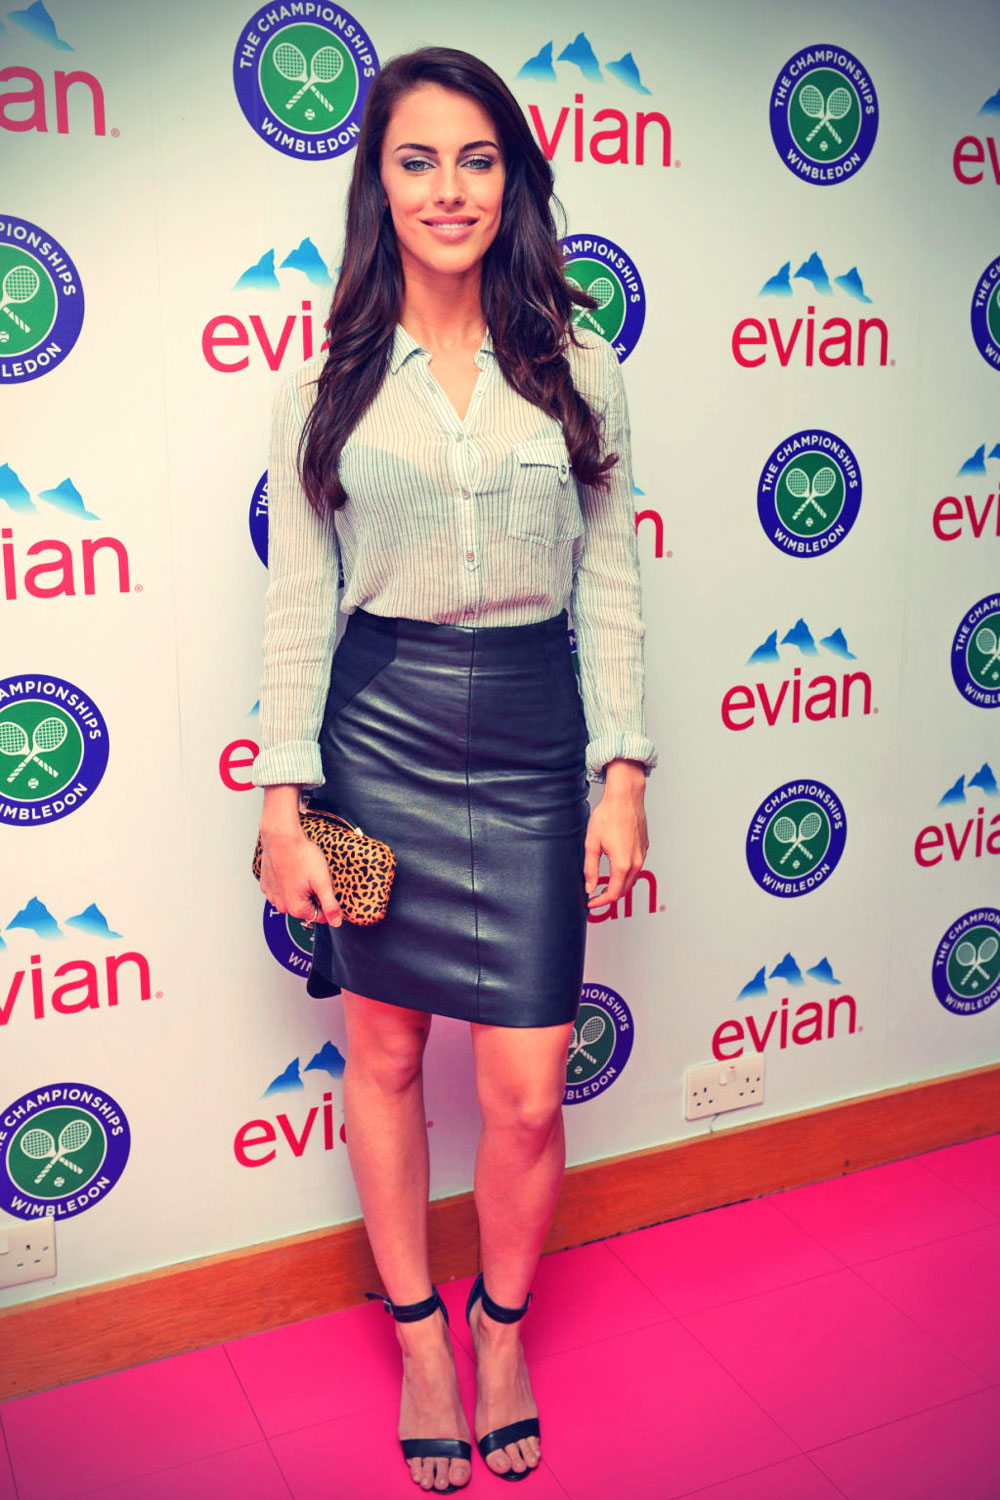 Jessica Lowndes attends the Evian suite on Day 10 of the Wimbledon